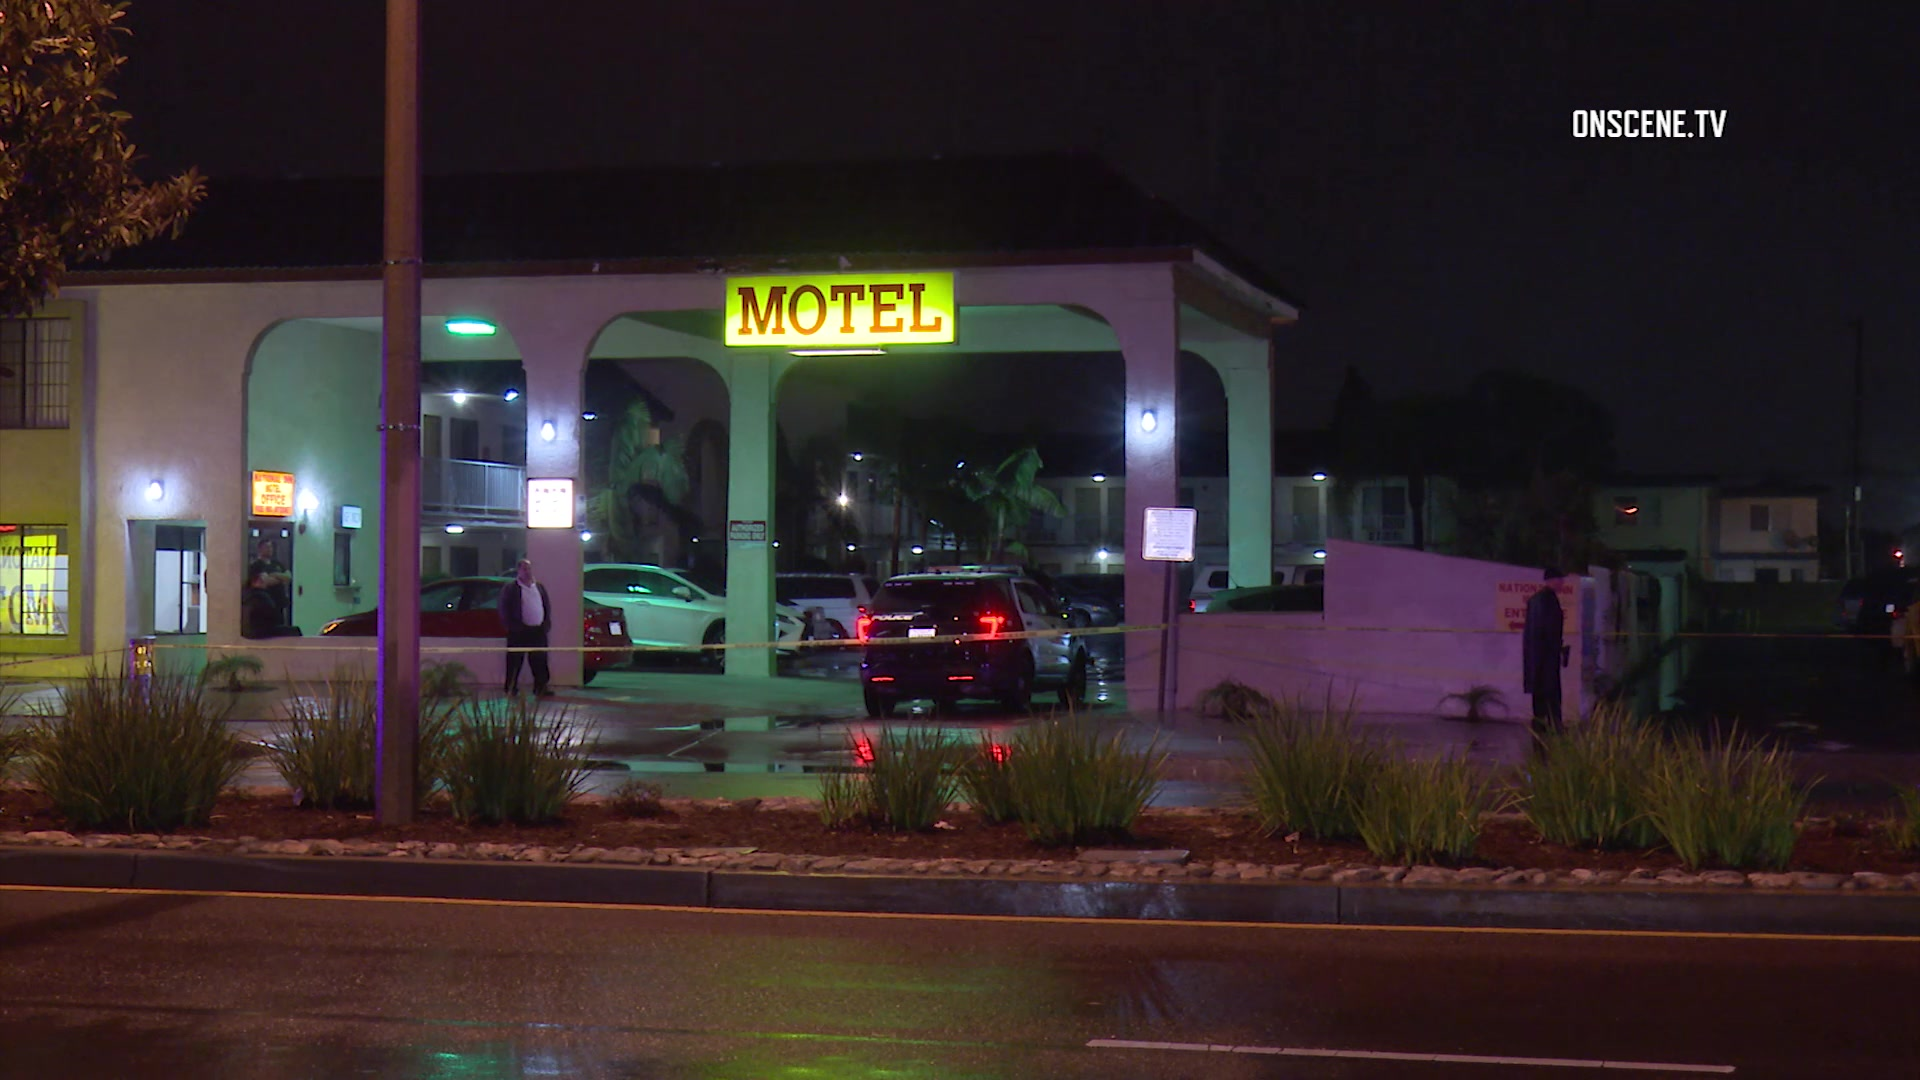 Driver shot killed by garden grove police during motel parking lot patrol officer injured Garden grove breaking news now